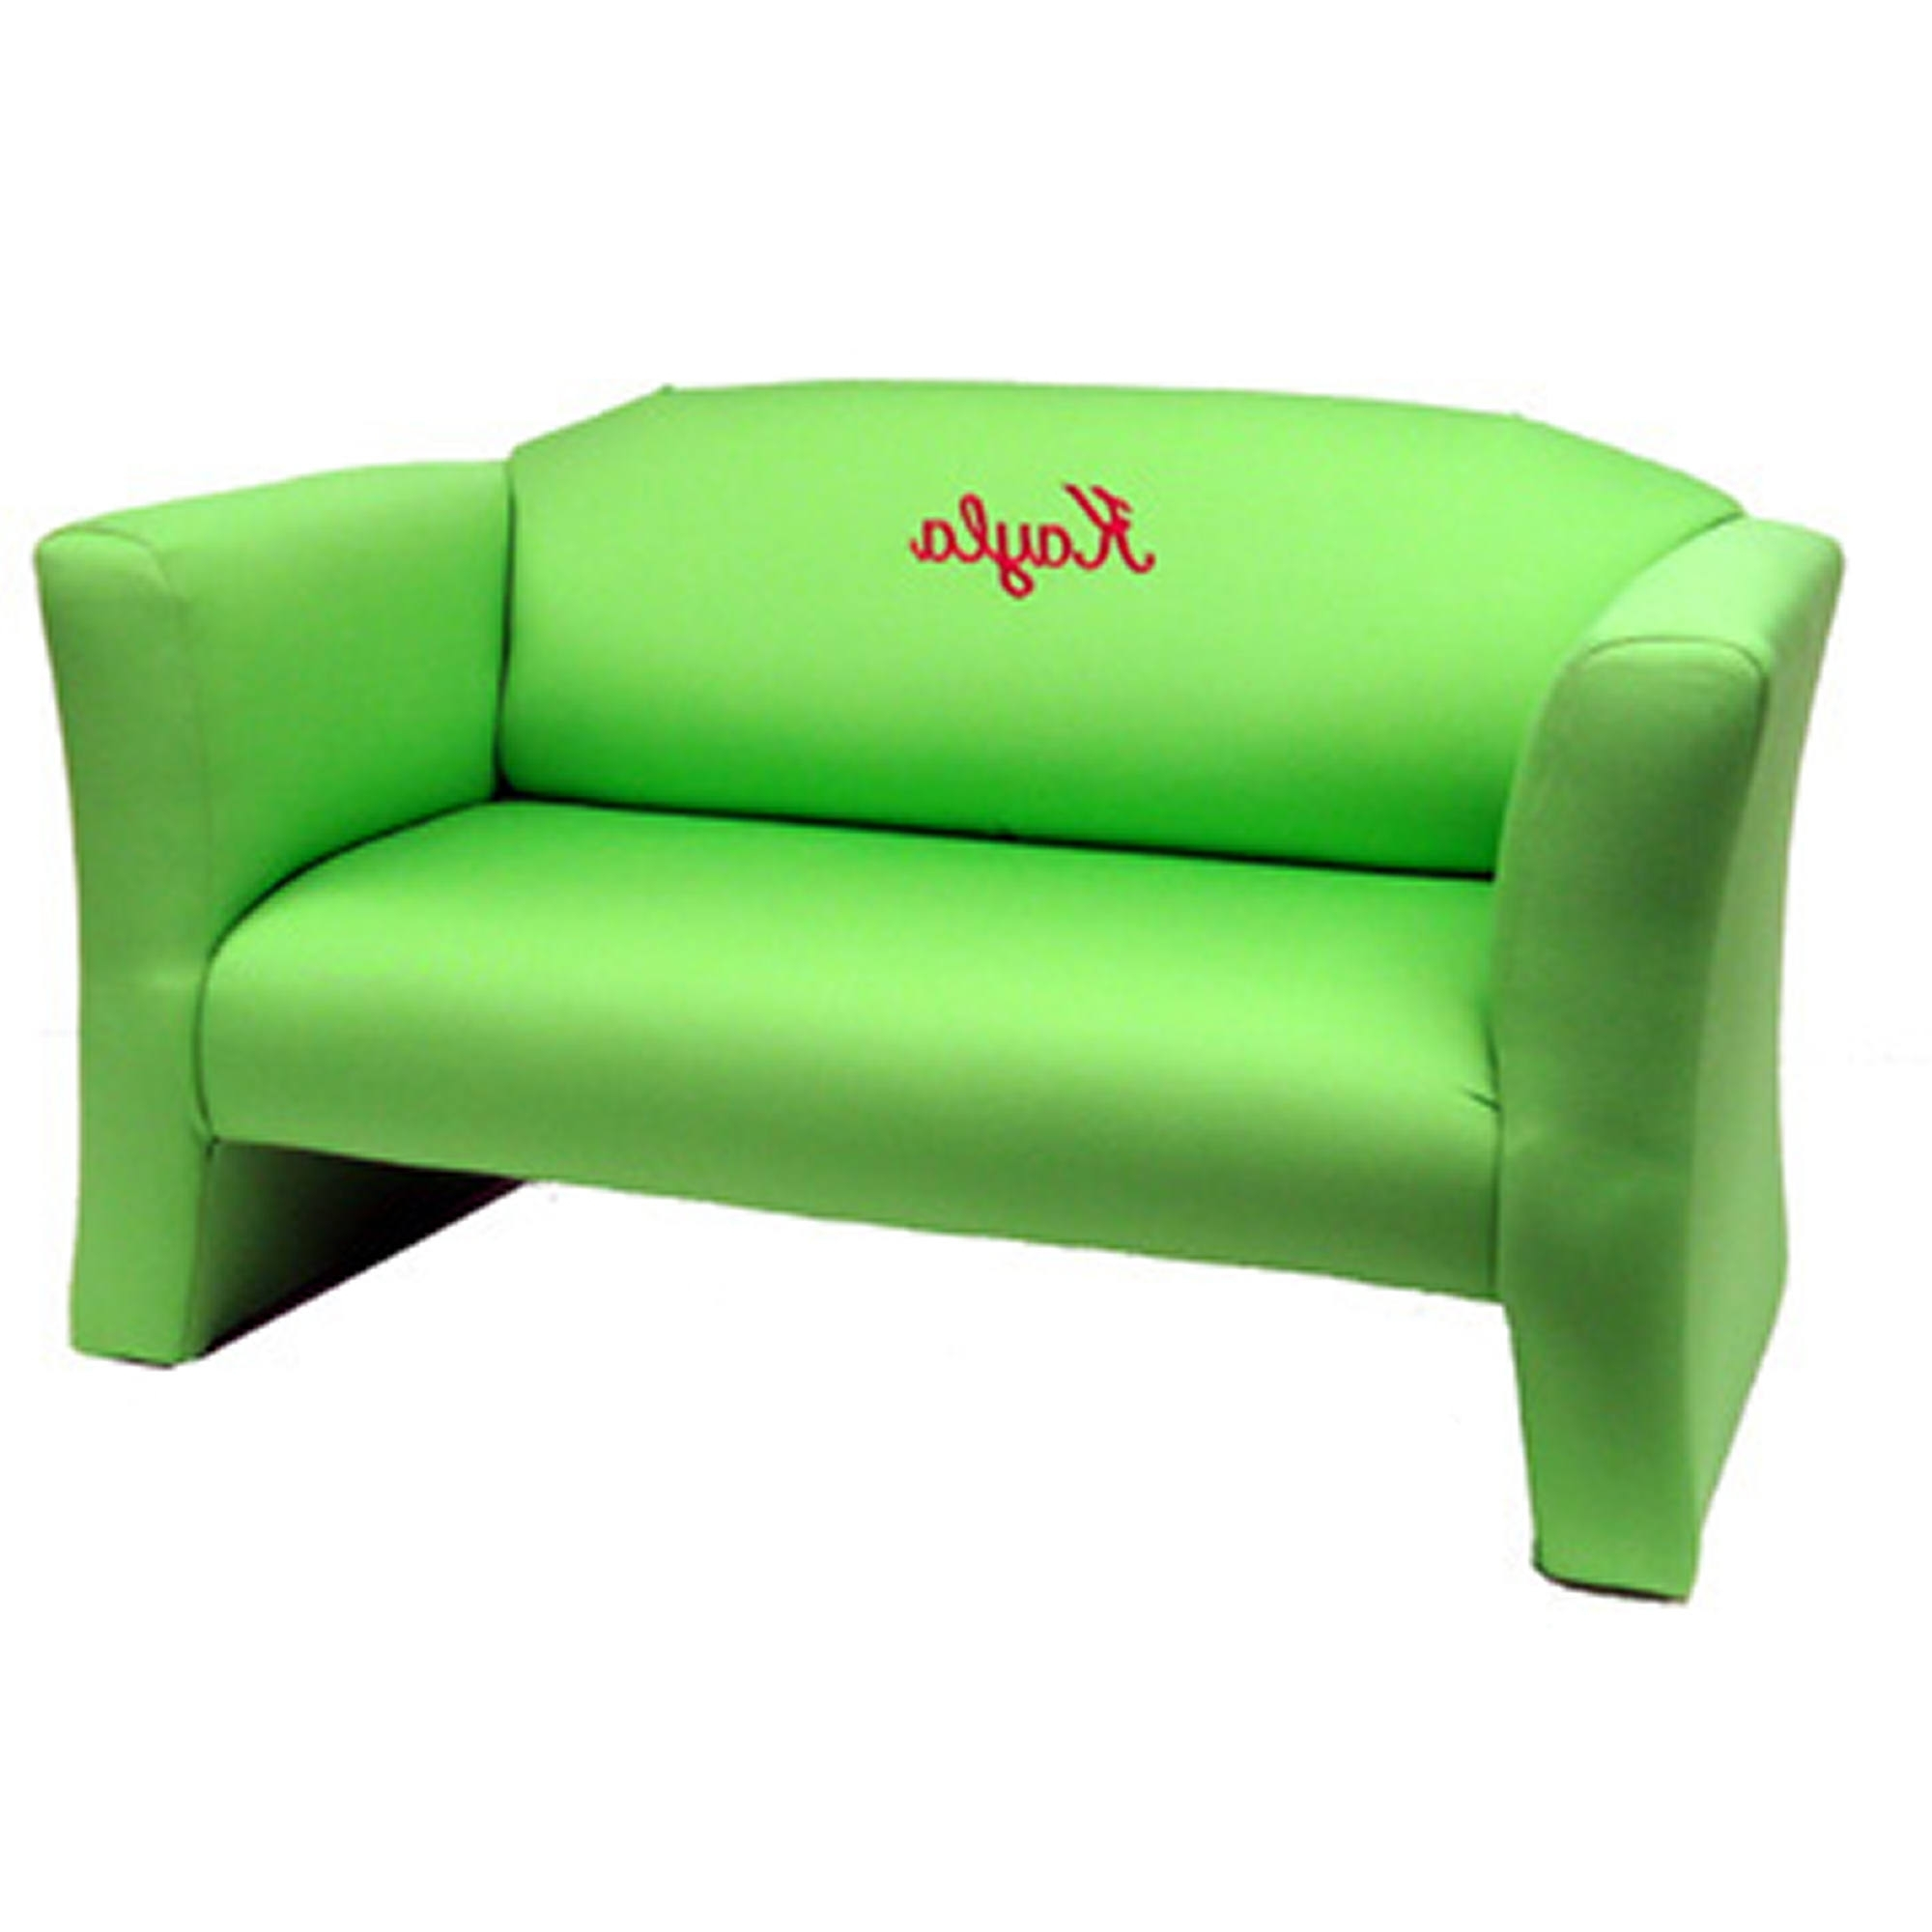 Kids Couches – Personalized Pertaining To Personalized Kids Chairs And Sofas (Gallery 15 of 20)